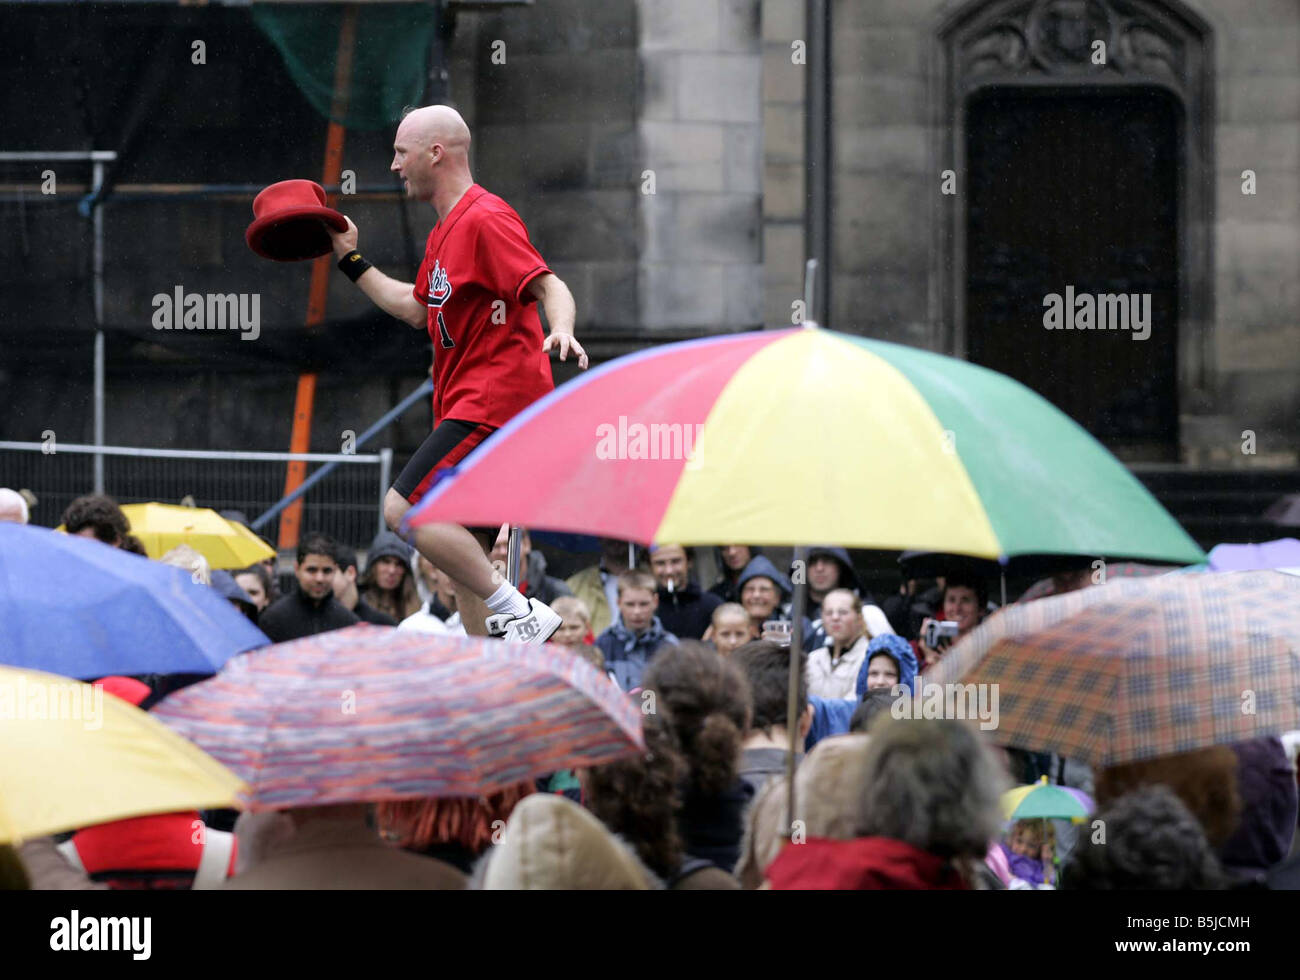 Street performers at the Edinburgh Fringe Festival The Royal Mile, A unicyclist performing in the rain - Stock Image